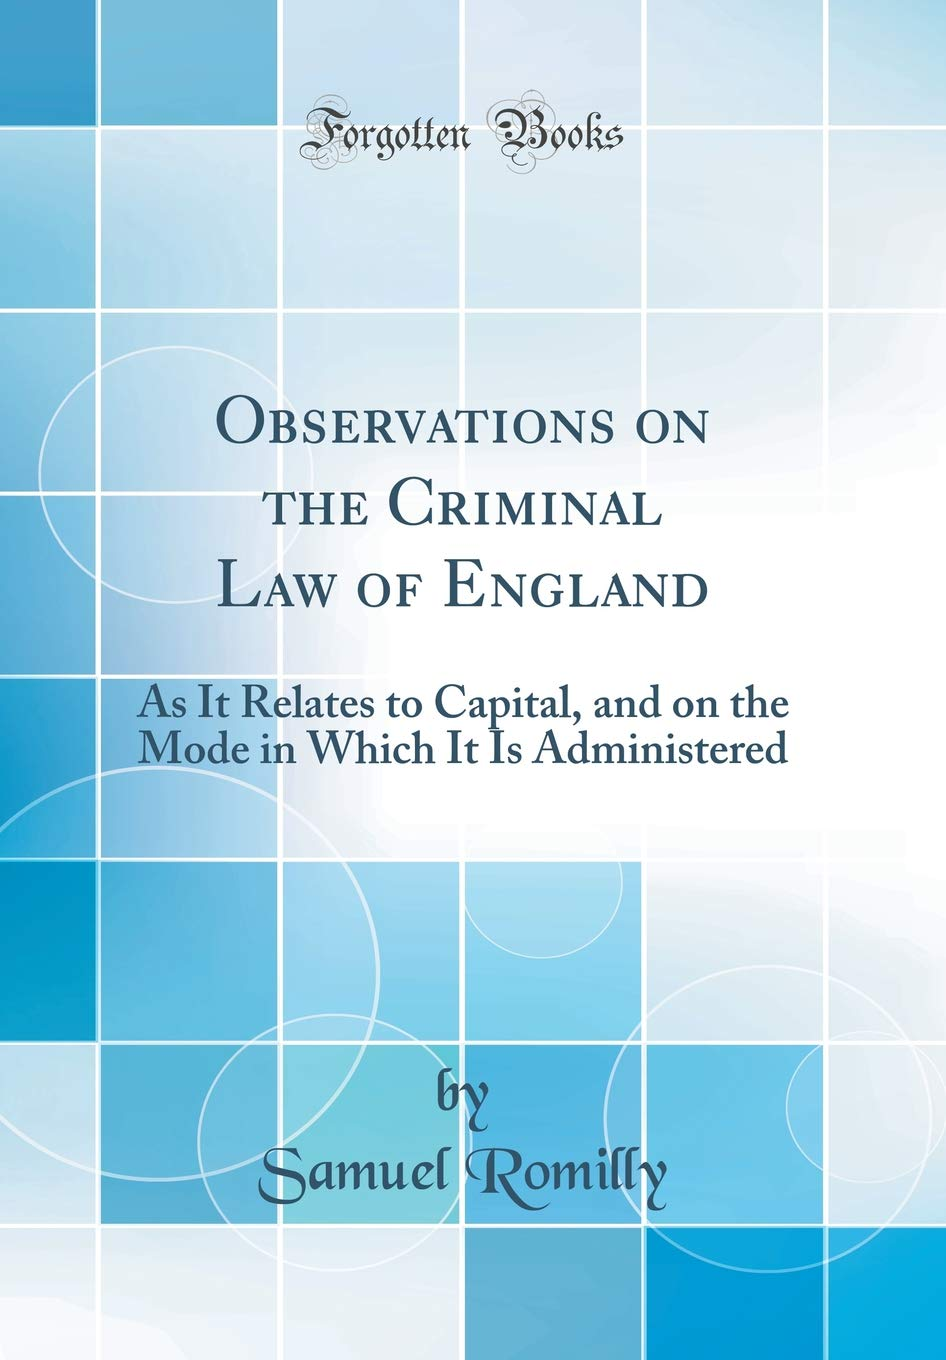 Observations on the Criminal Law of England: As It Relates to Capital, and on the Mode in Which It Is Administered (Classic Reprint) ebook